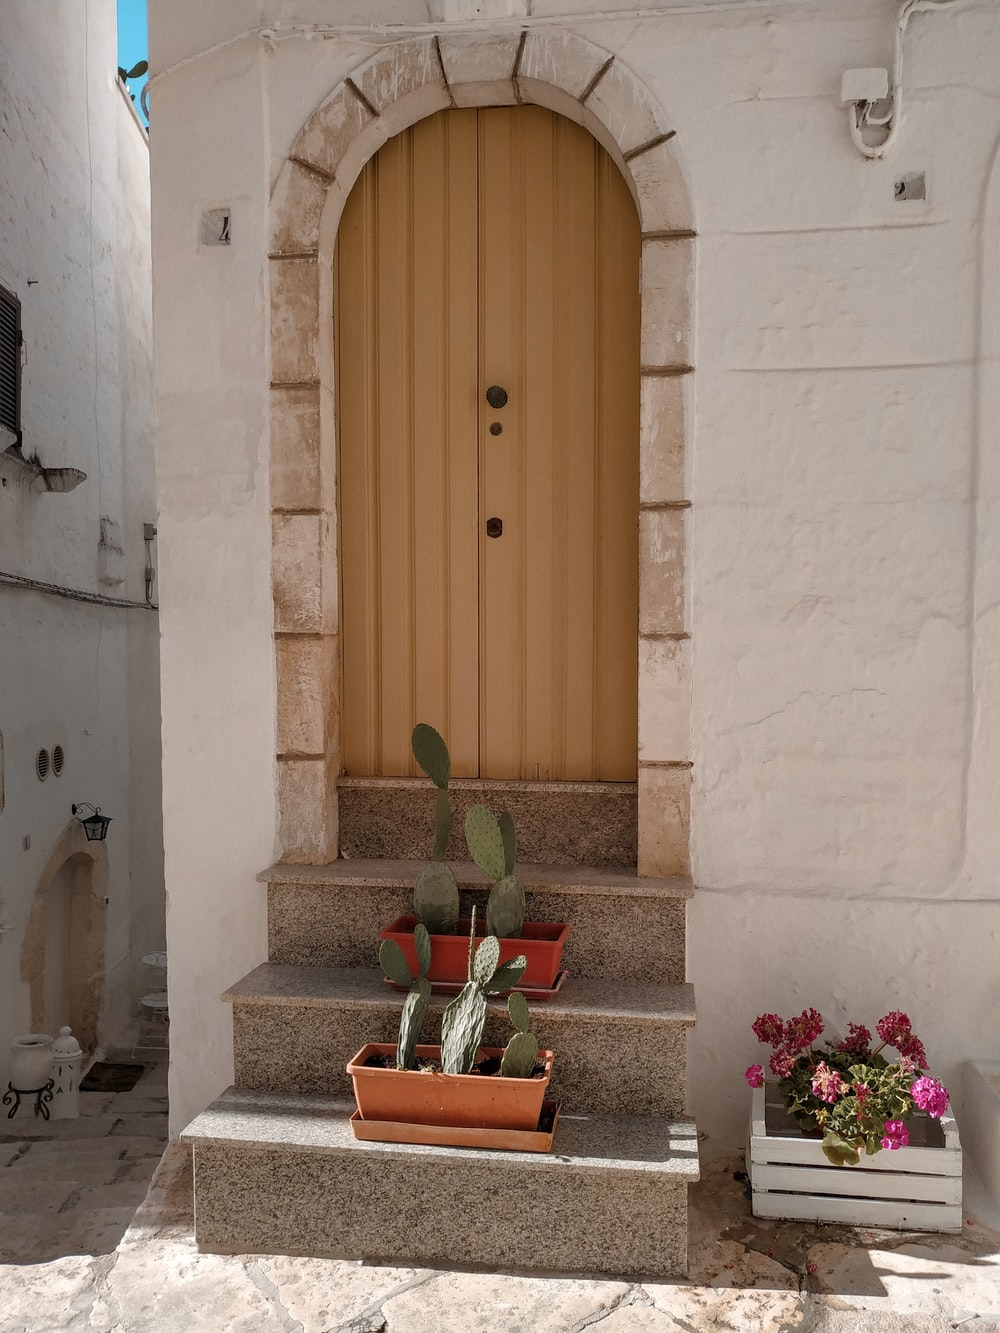 brown wooden door beside pink and white flowers